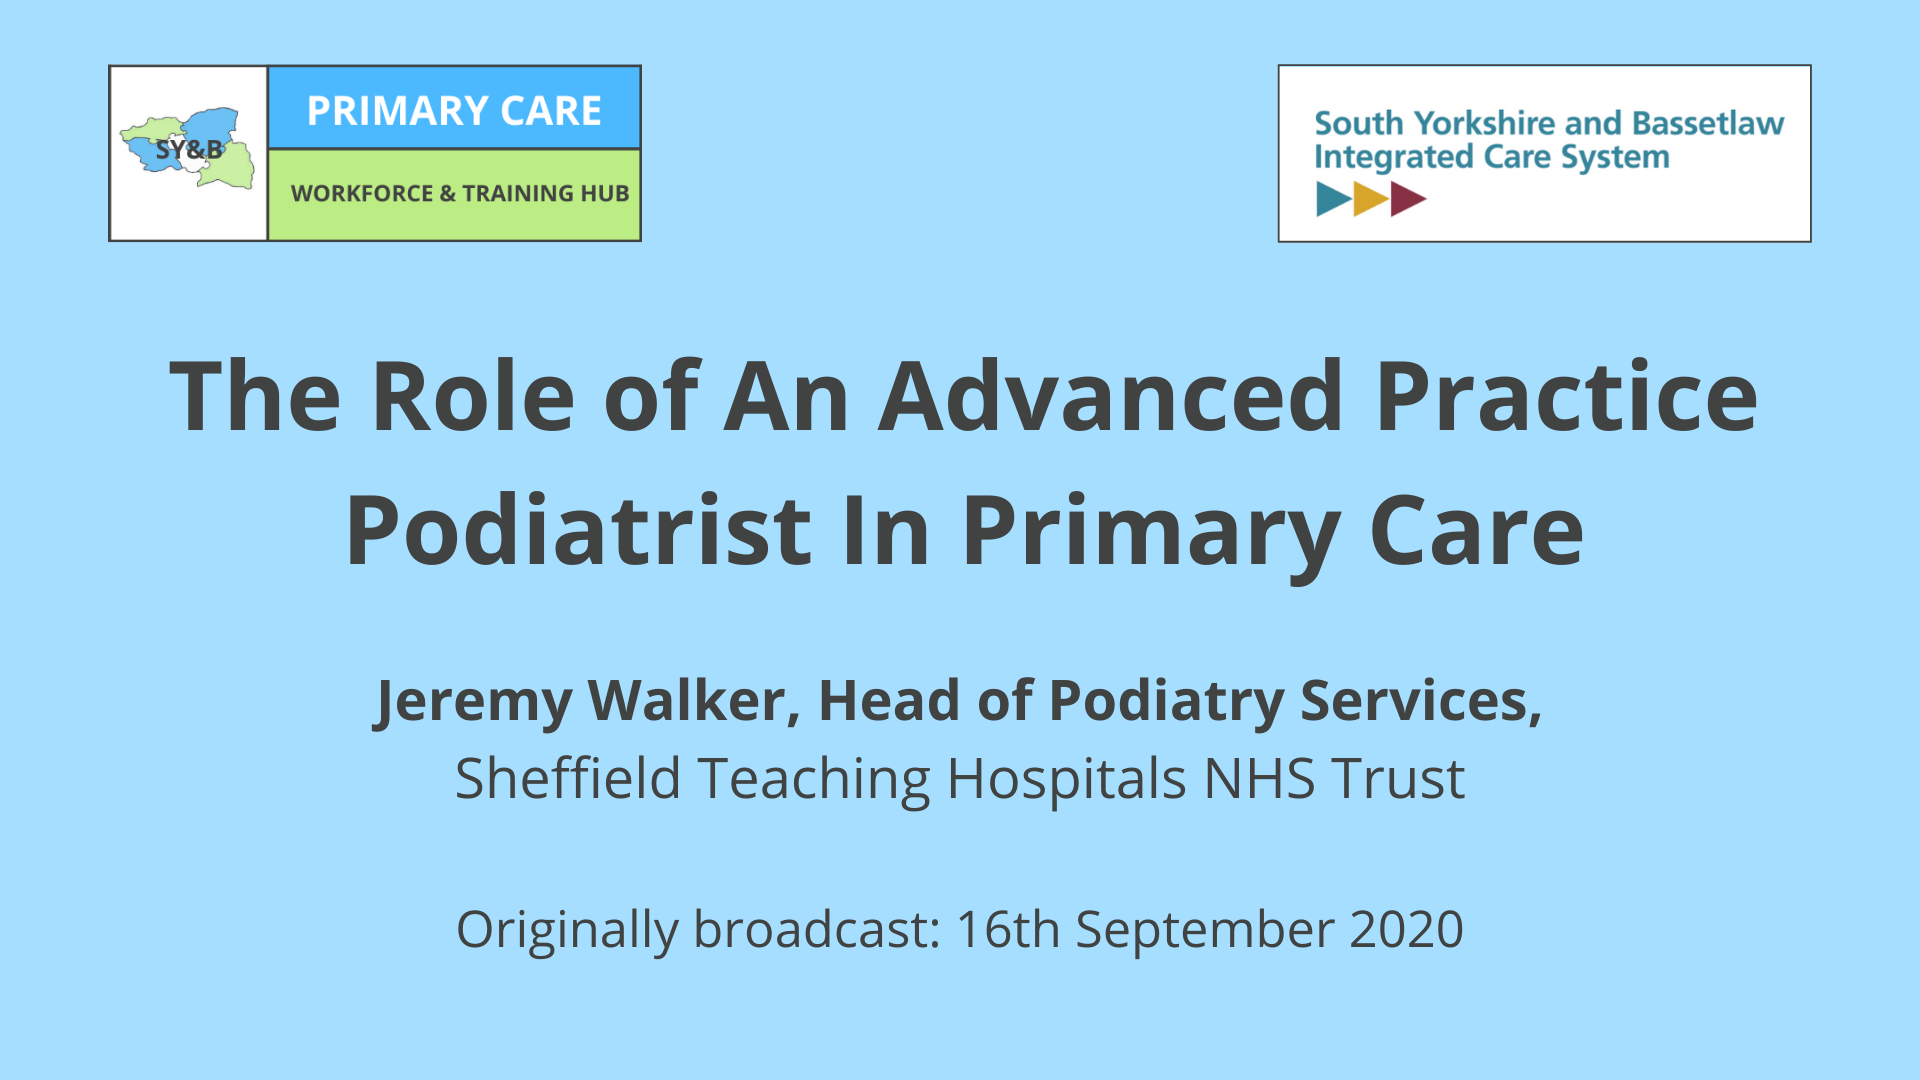 podiatrist advanced practice primary care SY&B